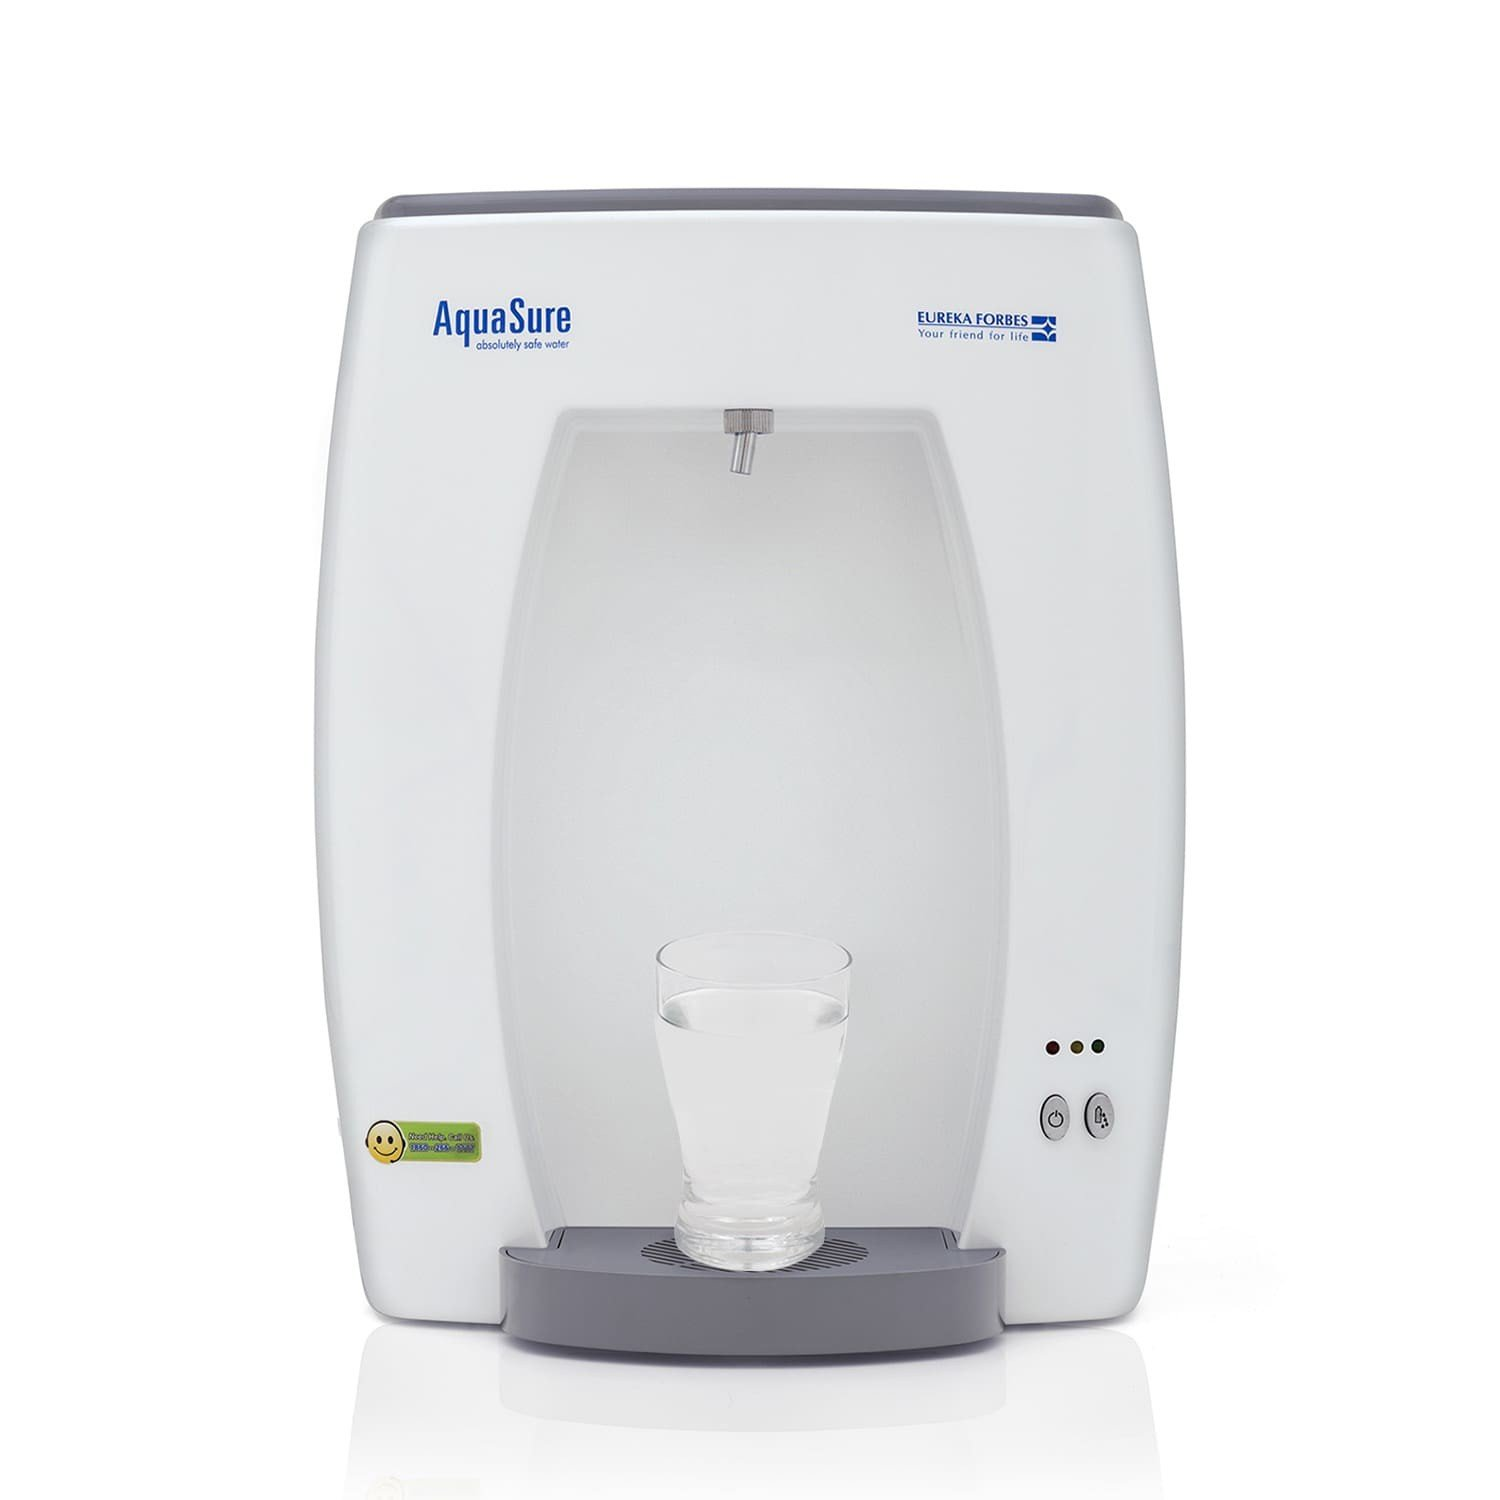 Eureka Forbes Aquasure from Aquaguard Smart 20-Watt UV Water